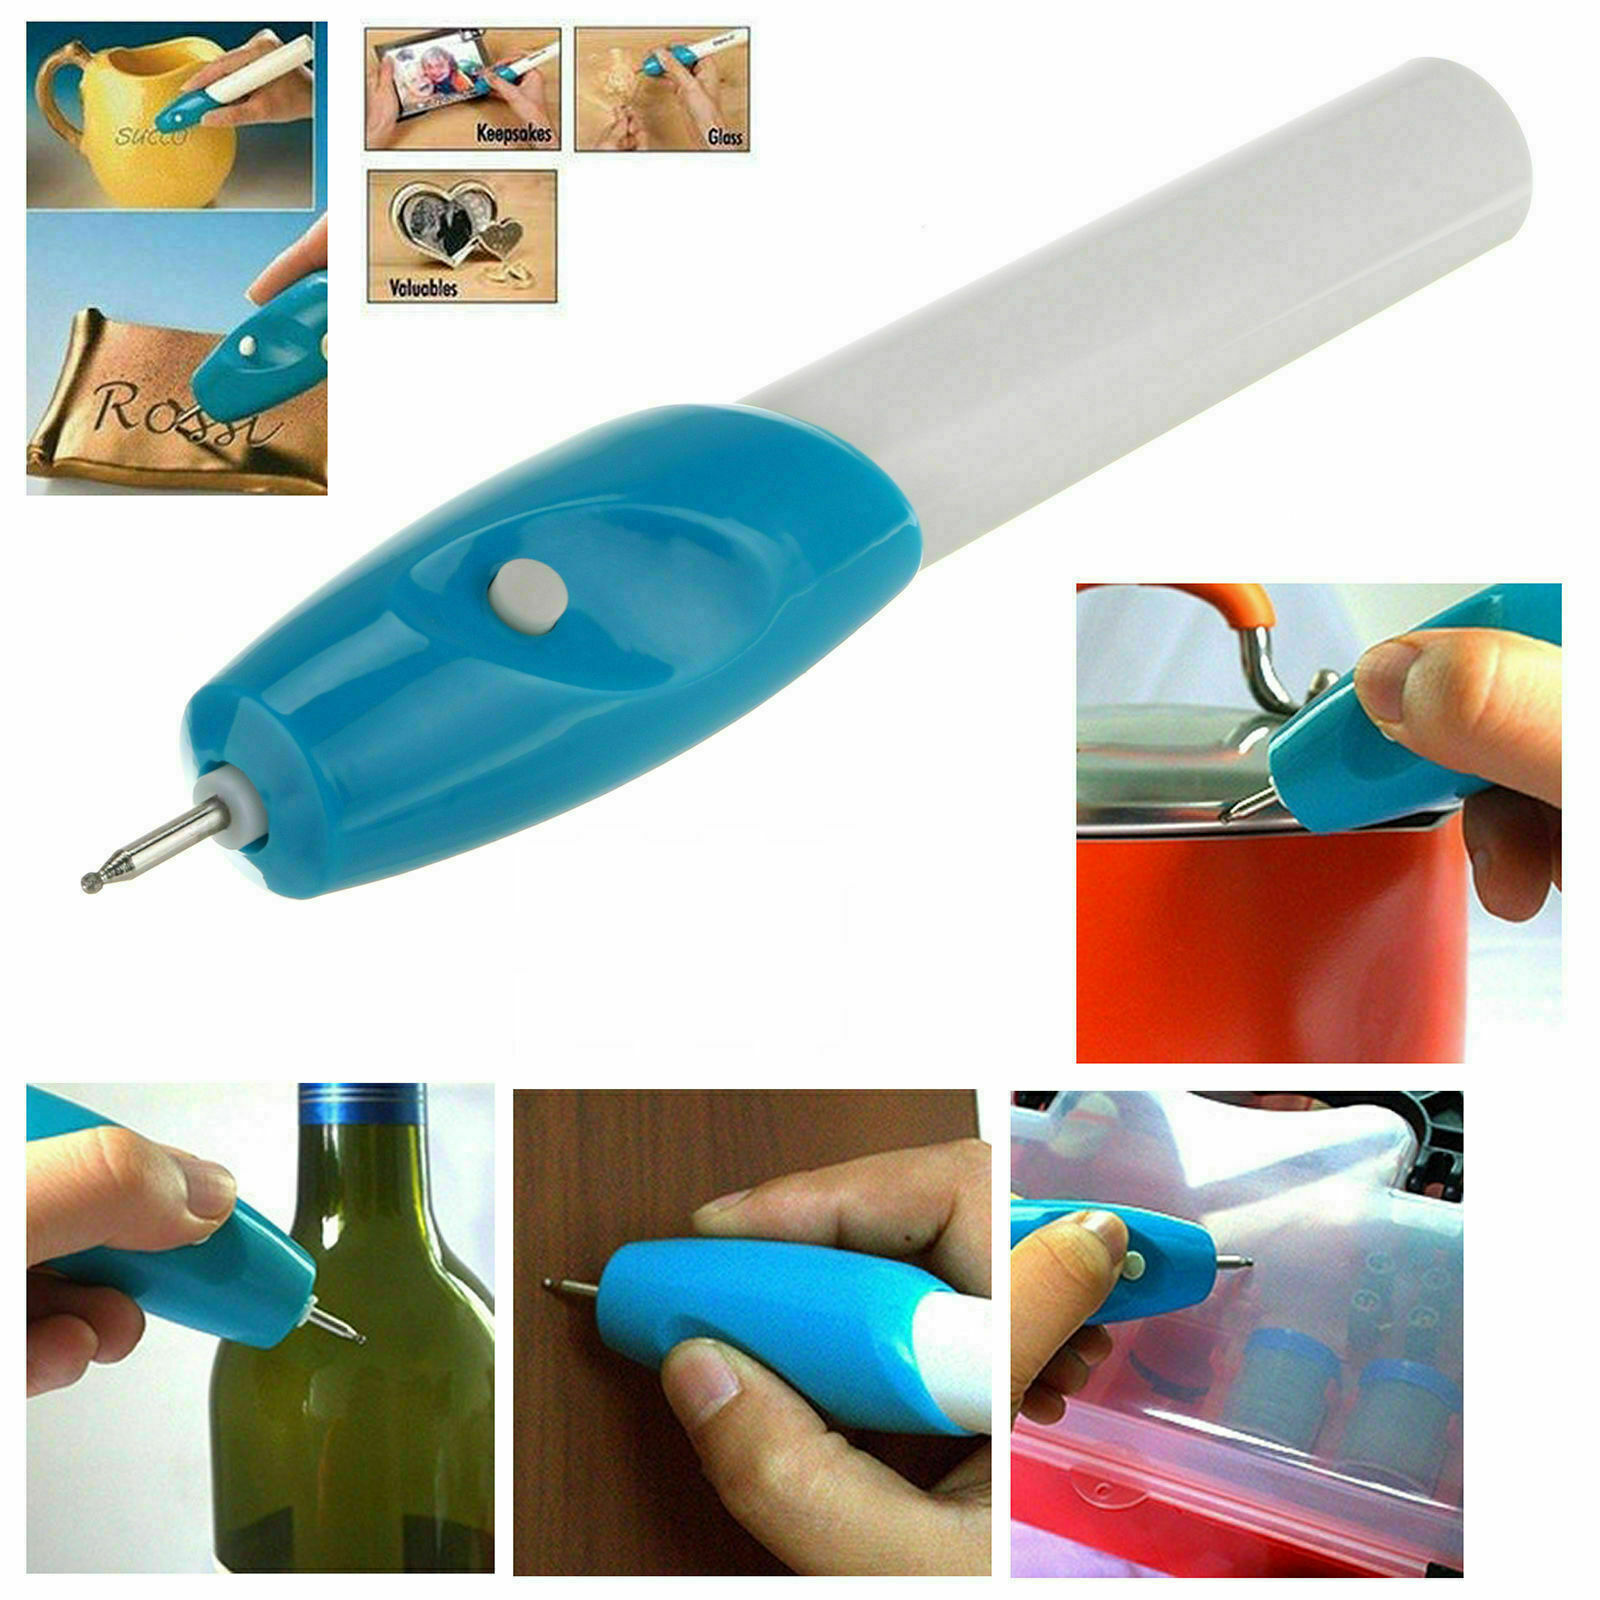 Engraving Etching Pen Hobby Craft Rotary Handheld Tool For Metal Glass Jewellery 4